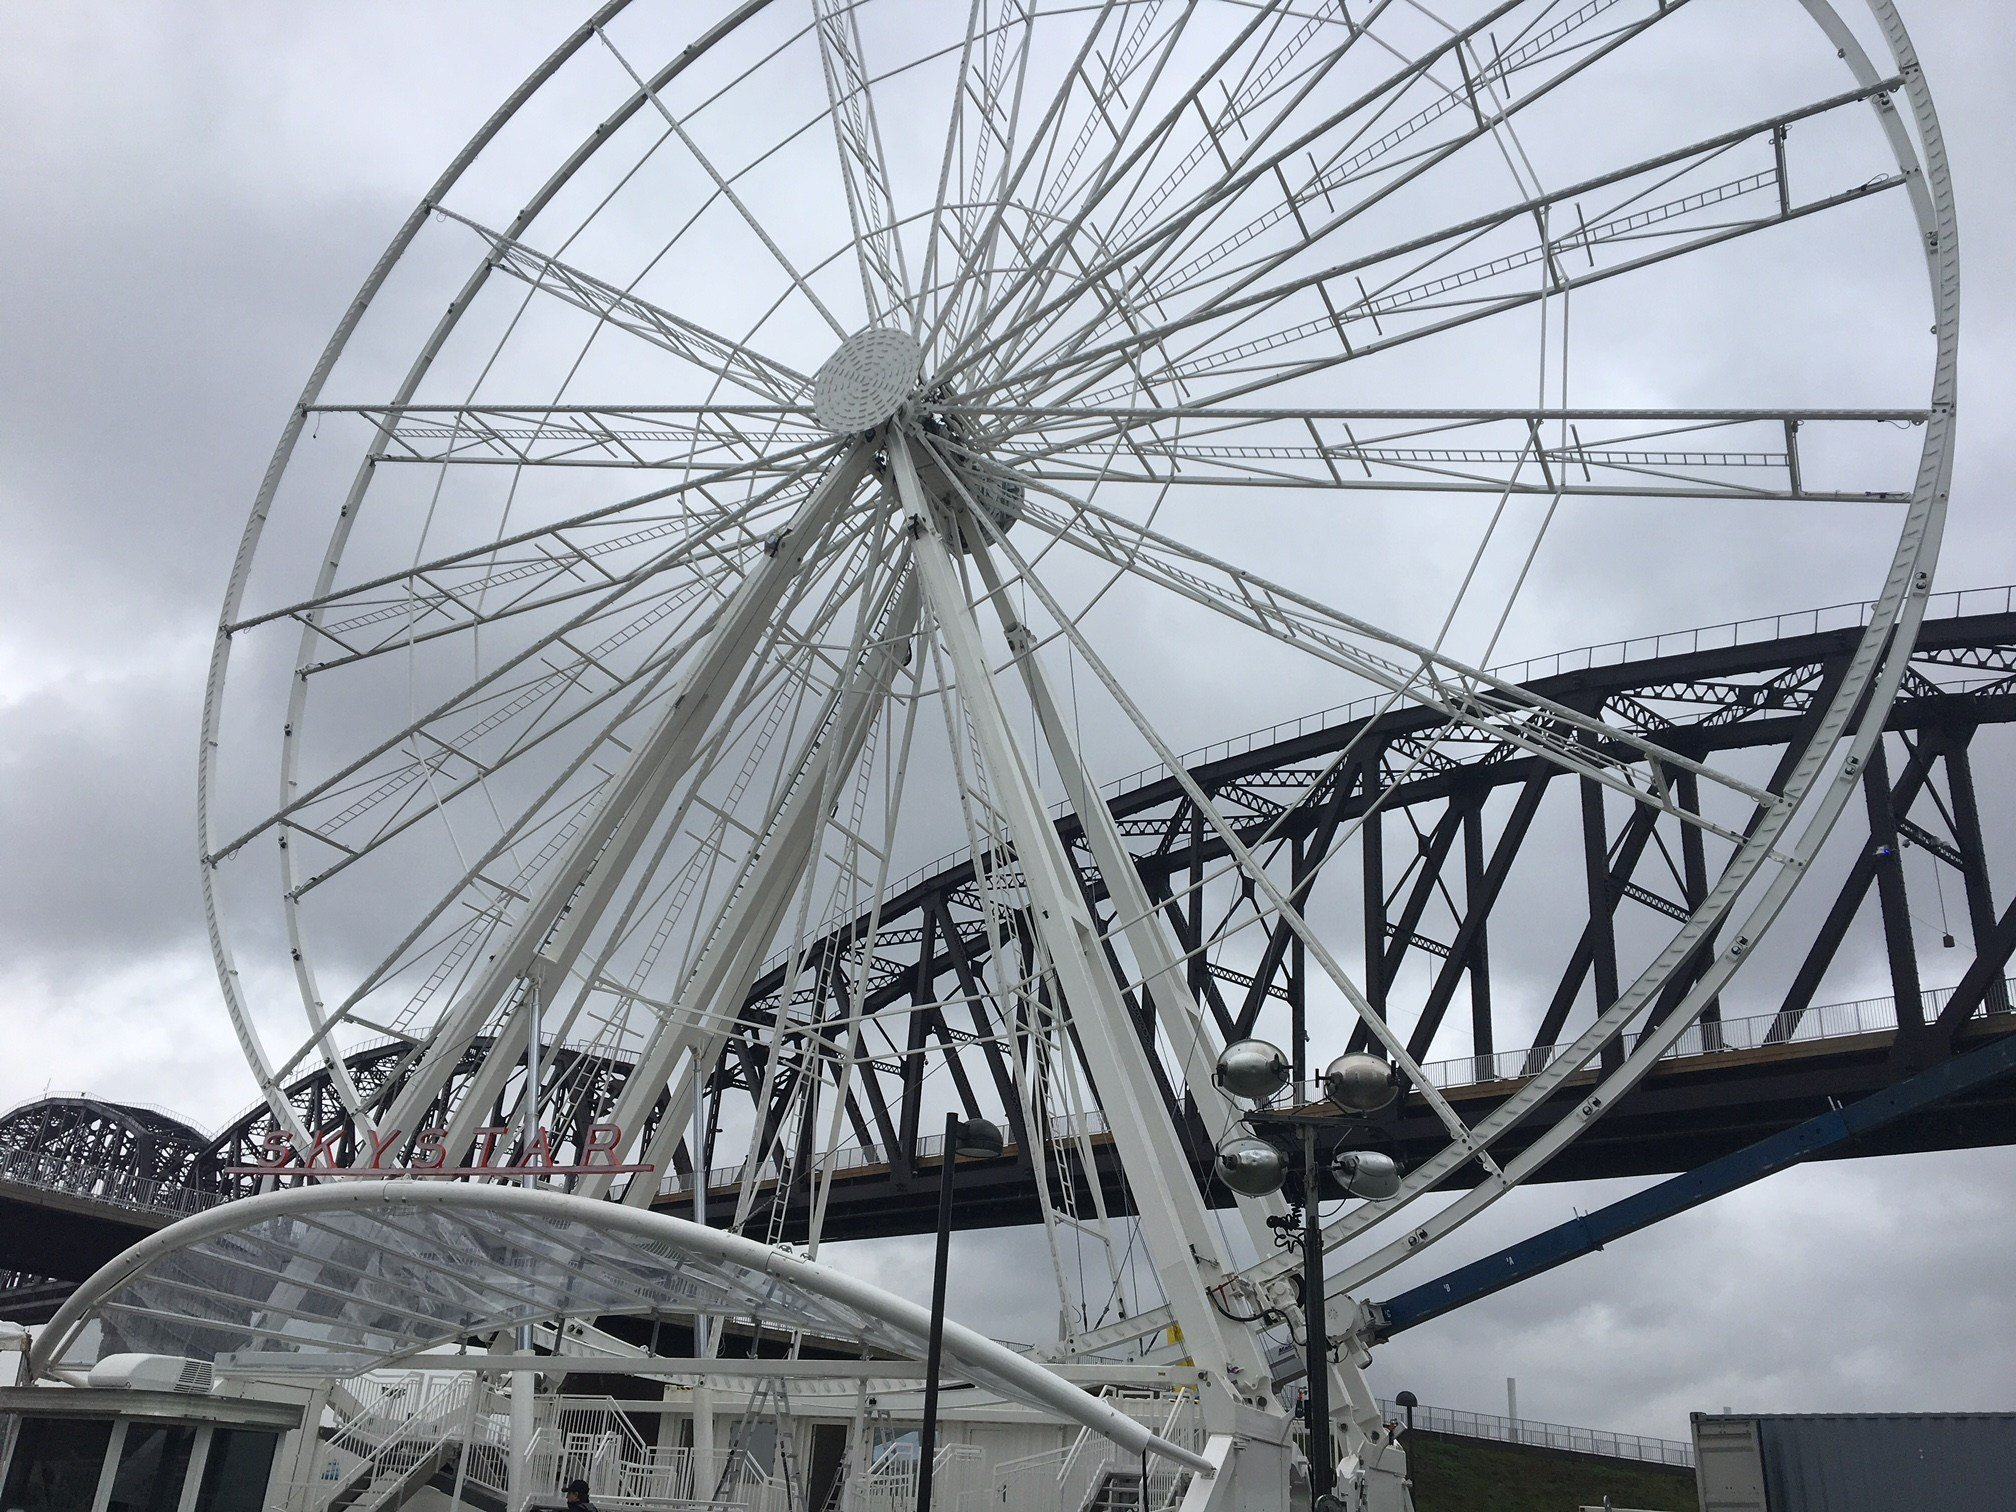 The opening of the SkyStar Observation Wheel is being delayed because of rain and wet weather.